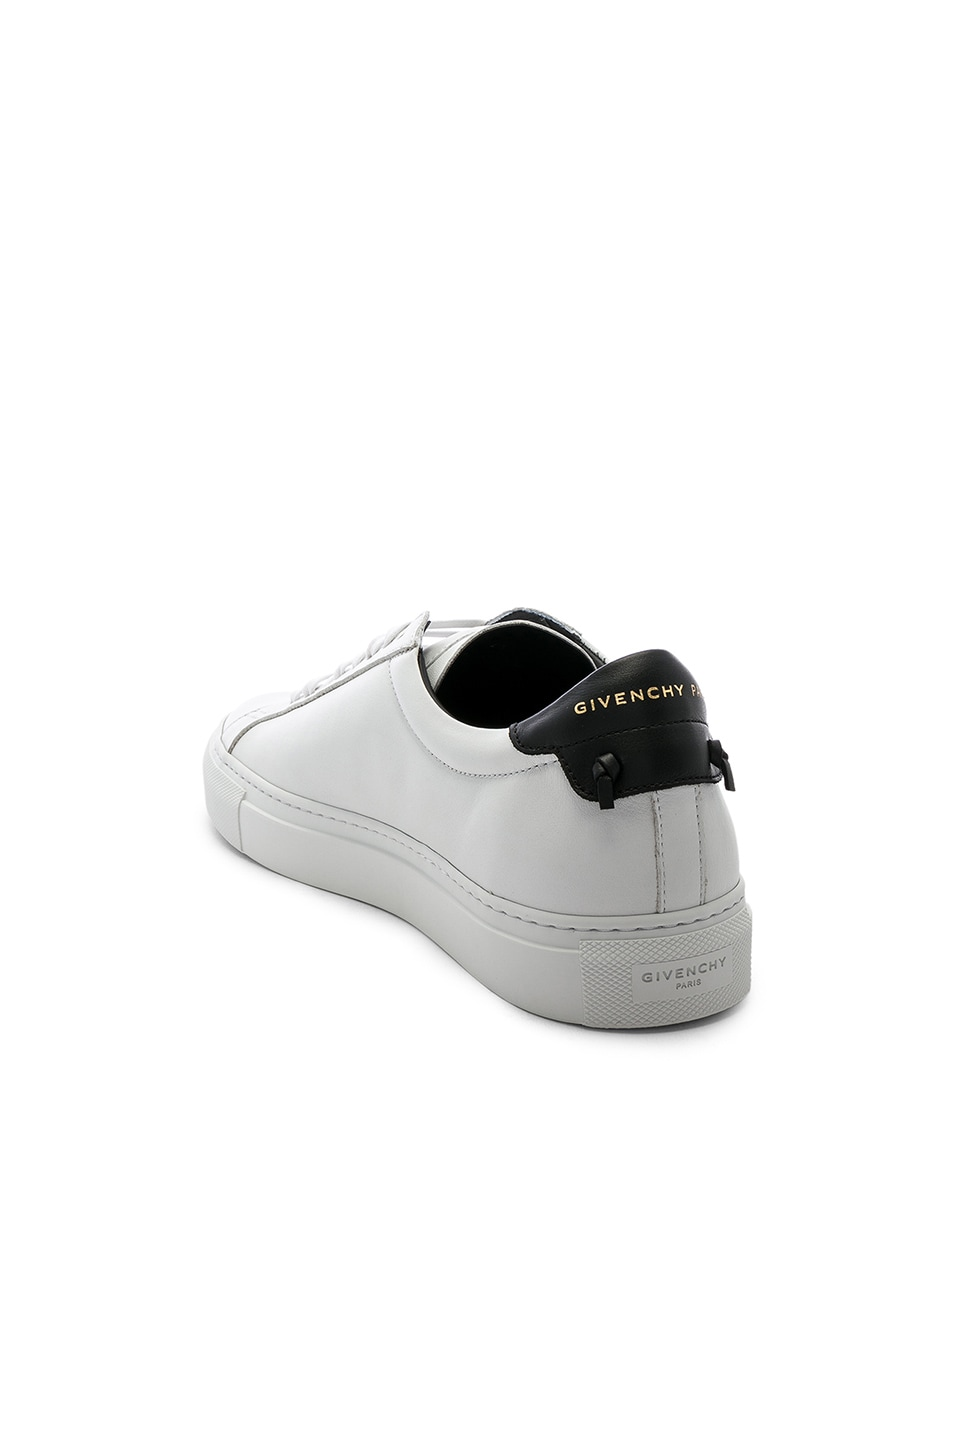 1d763120f Image 3 of Givenchy Urban Street Perforated Sneakers in White & Black